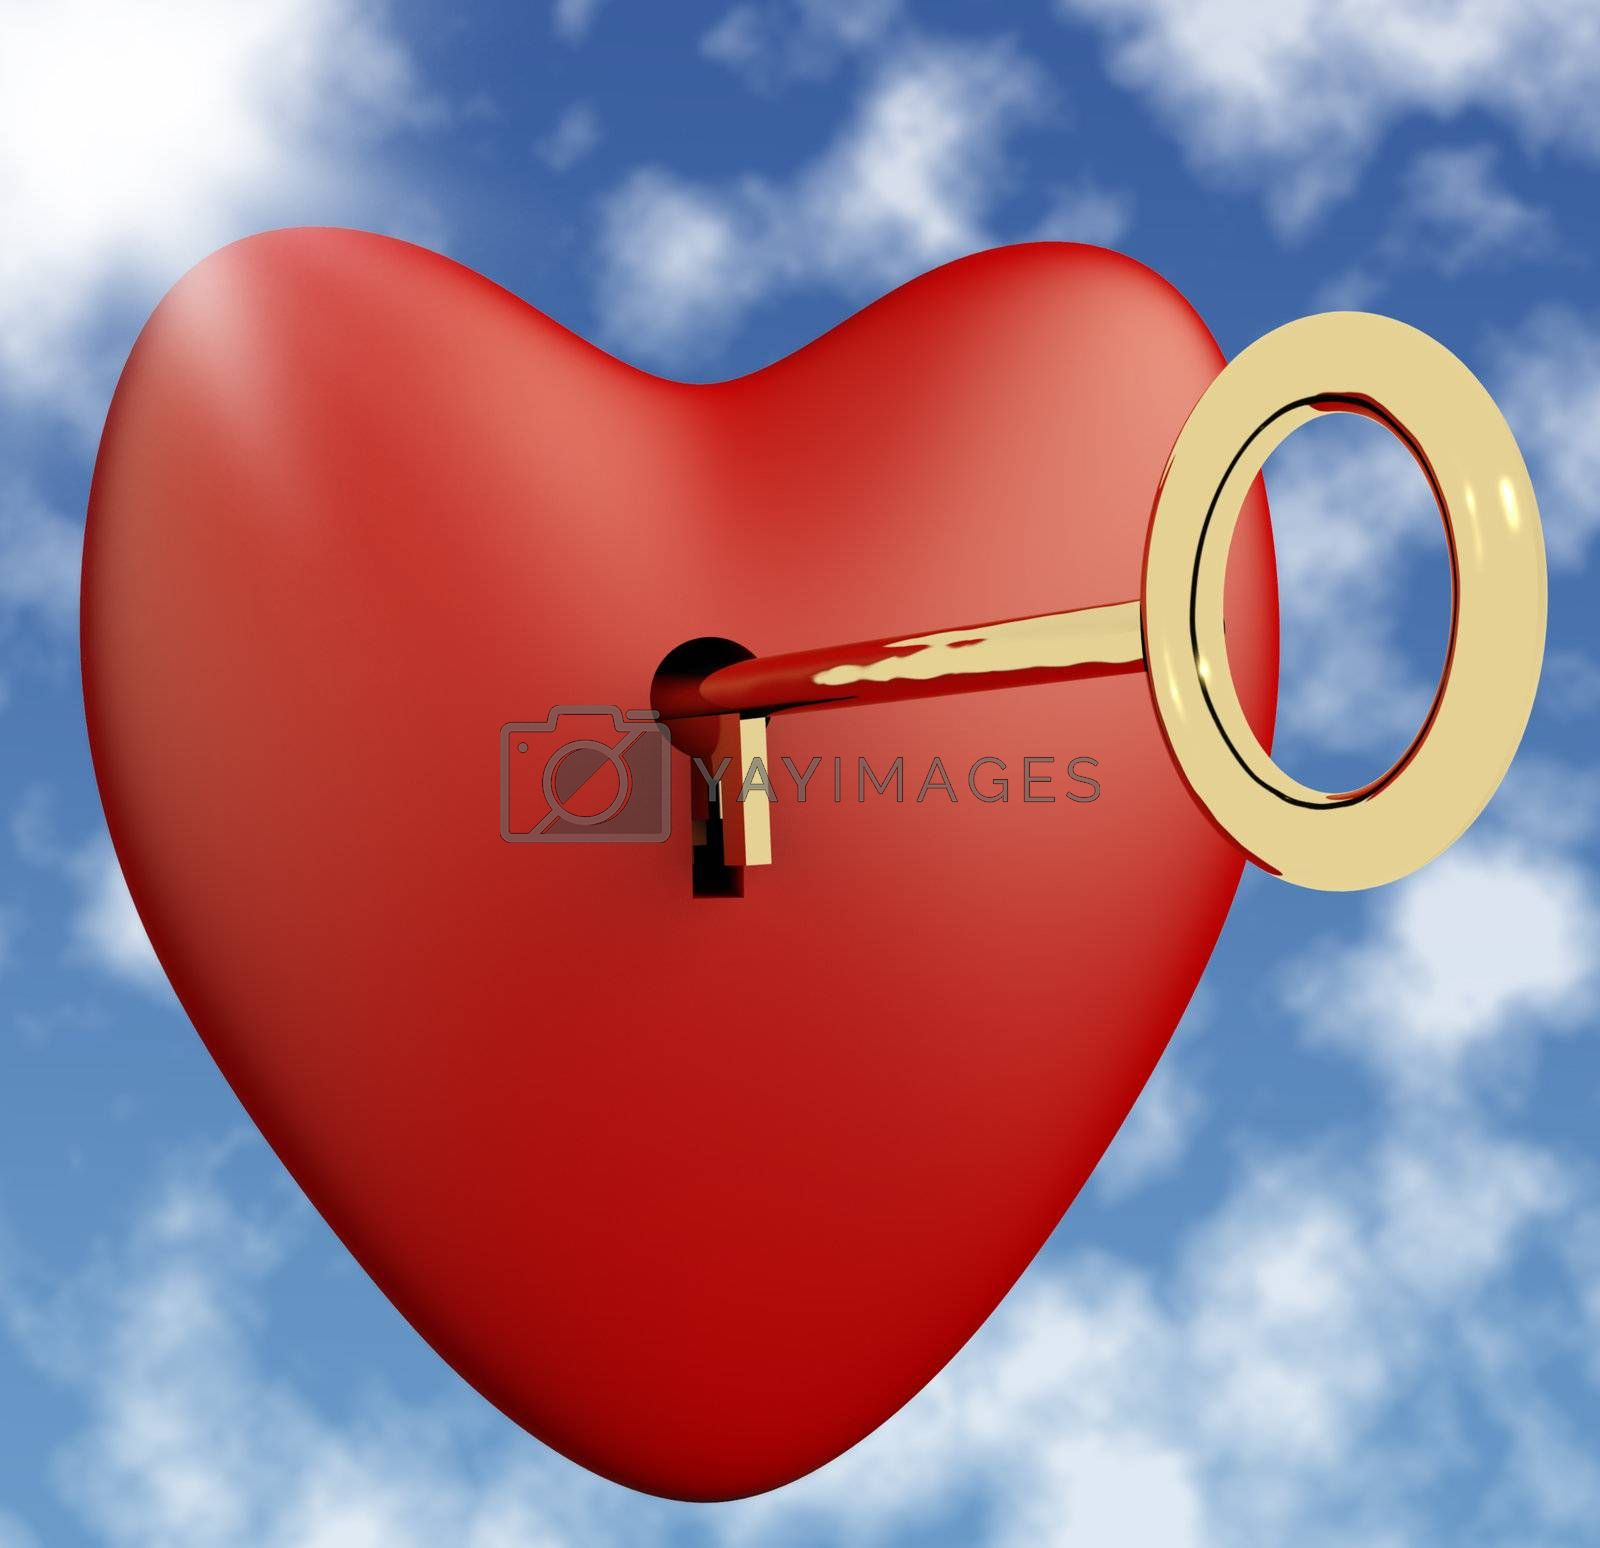 Heart With Key And Sky Background Showing Love Romance And Valentine